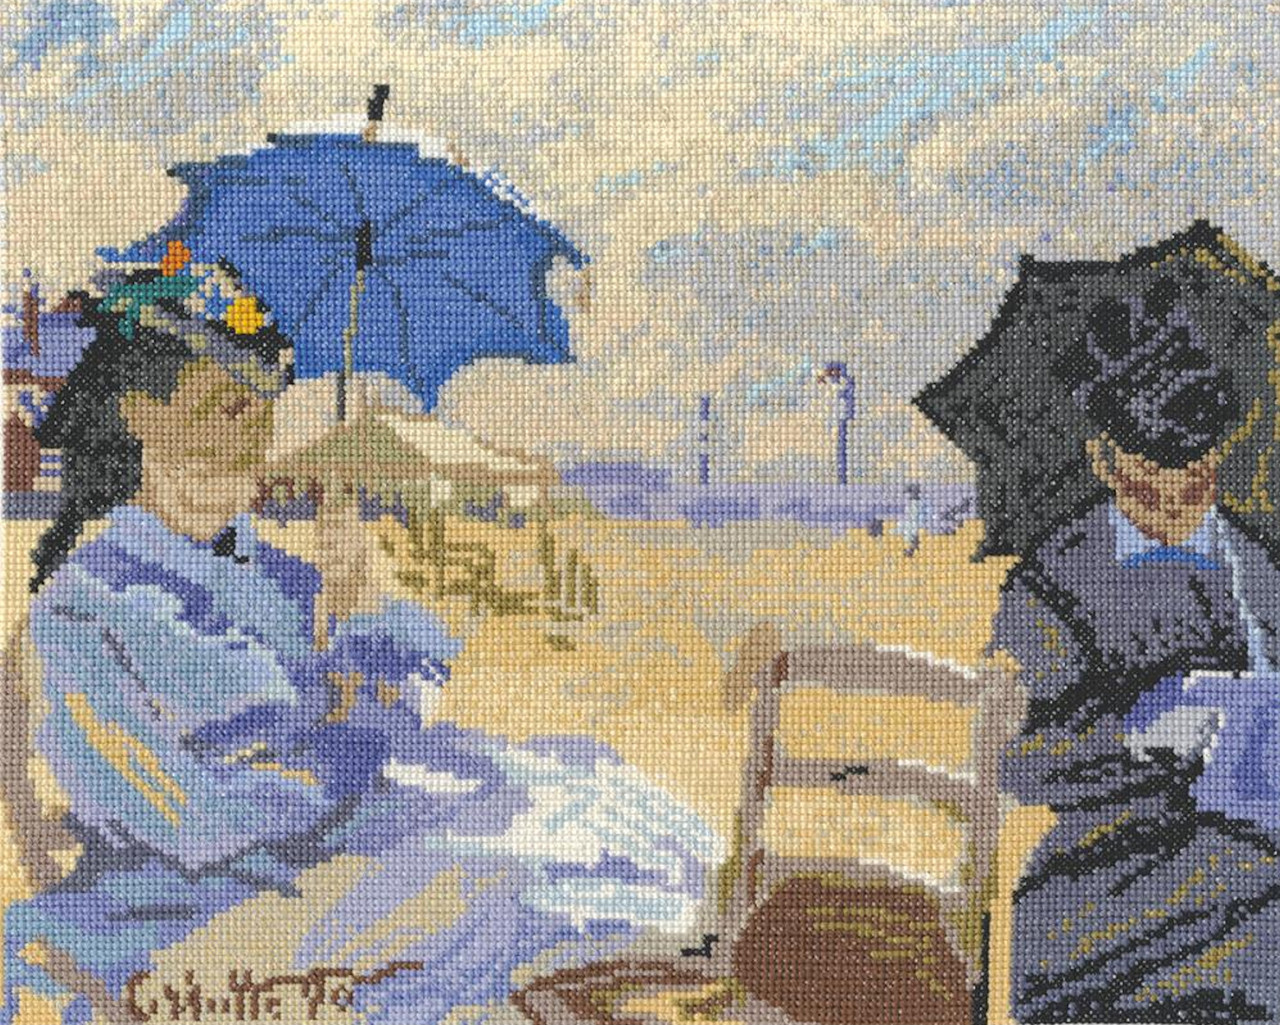 DMC - Monet's The Beach at Tourville